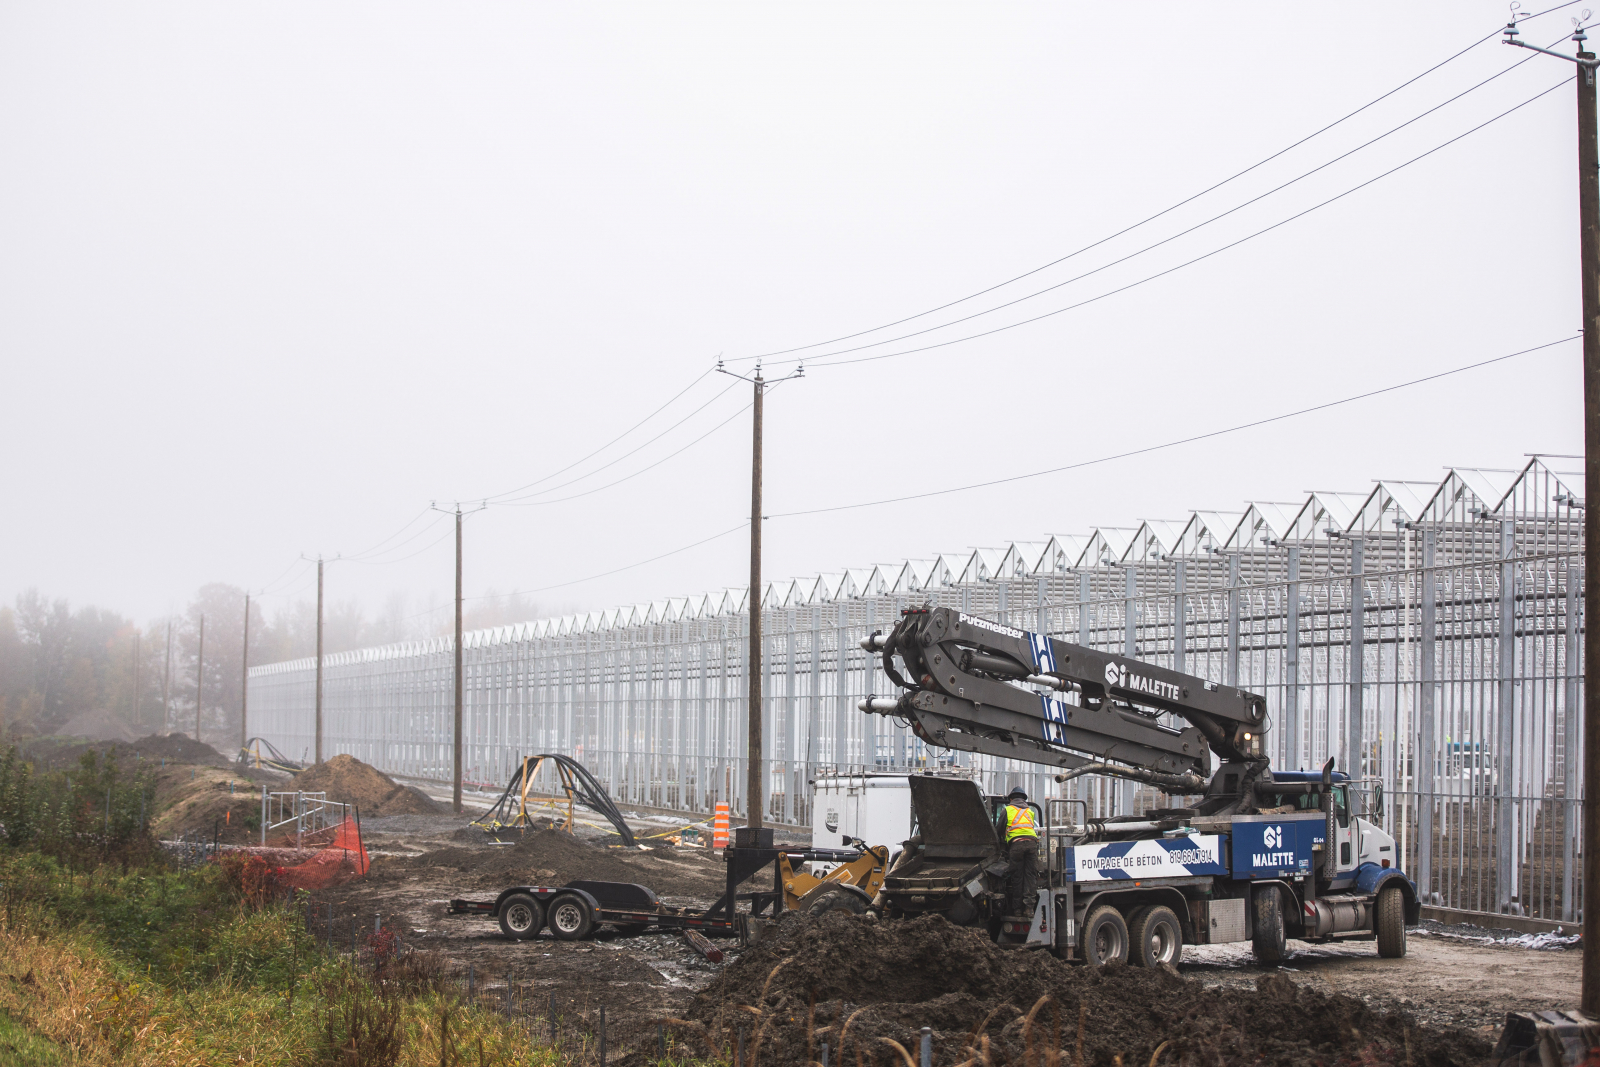 Rapid contruction at Hexo Corp, a cannabis production facility in Gatineau, QC